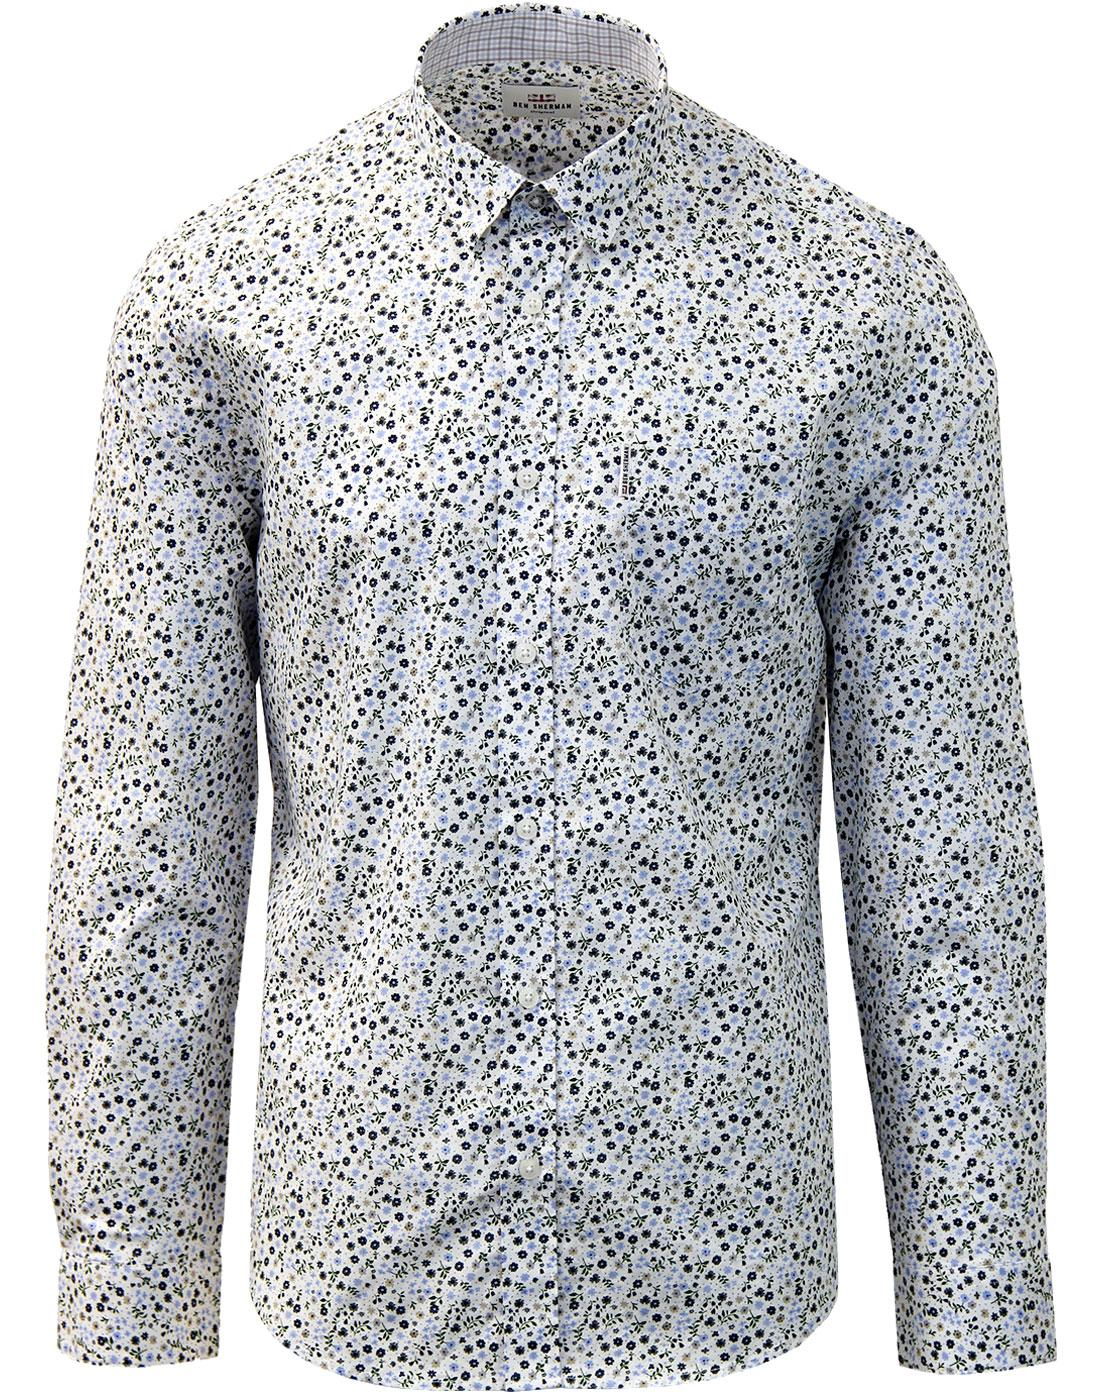 BEN SHERMAN Mod Micro Floral Button Under Shirt W